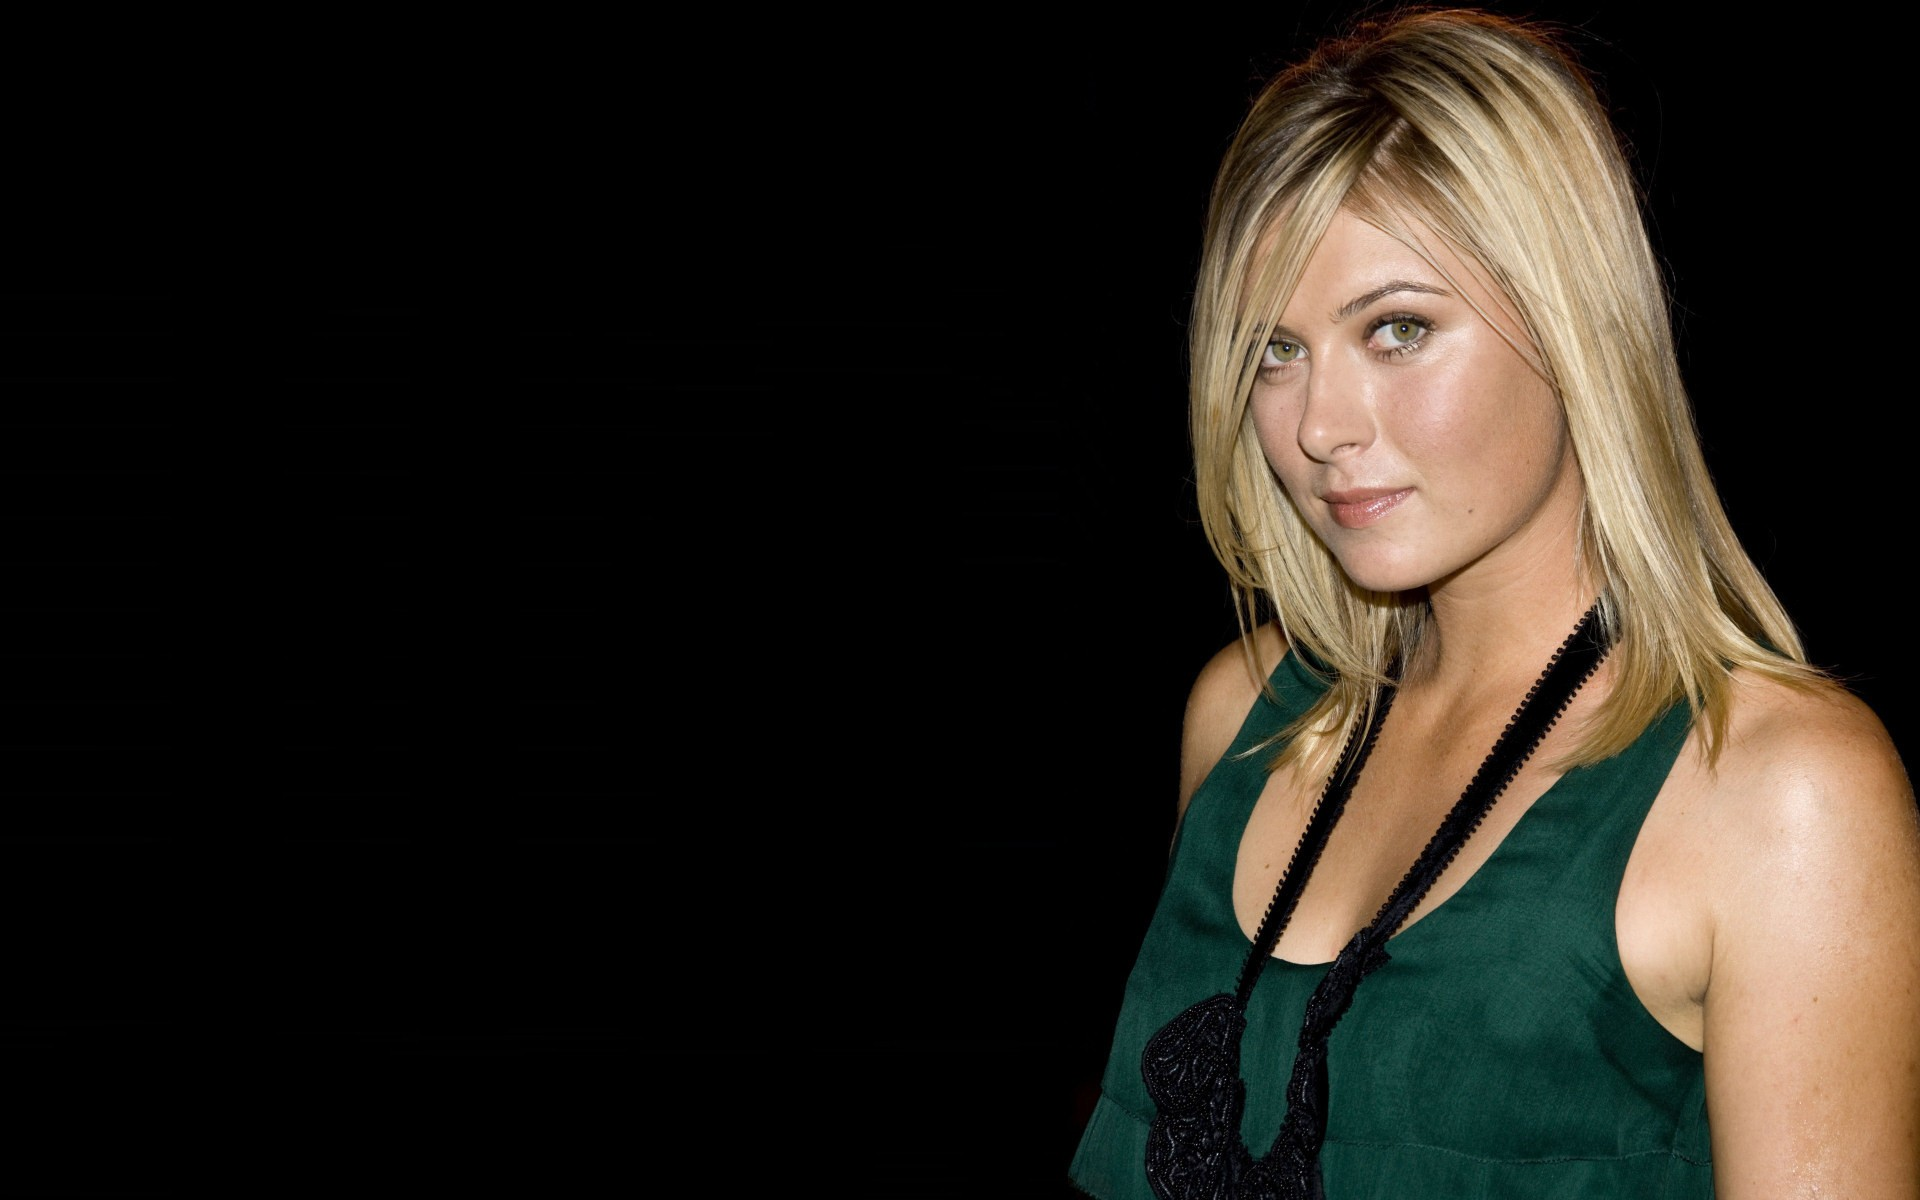 blondes Green woman maria HD Wallpaper